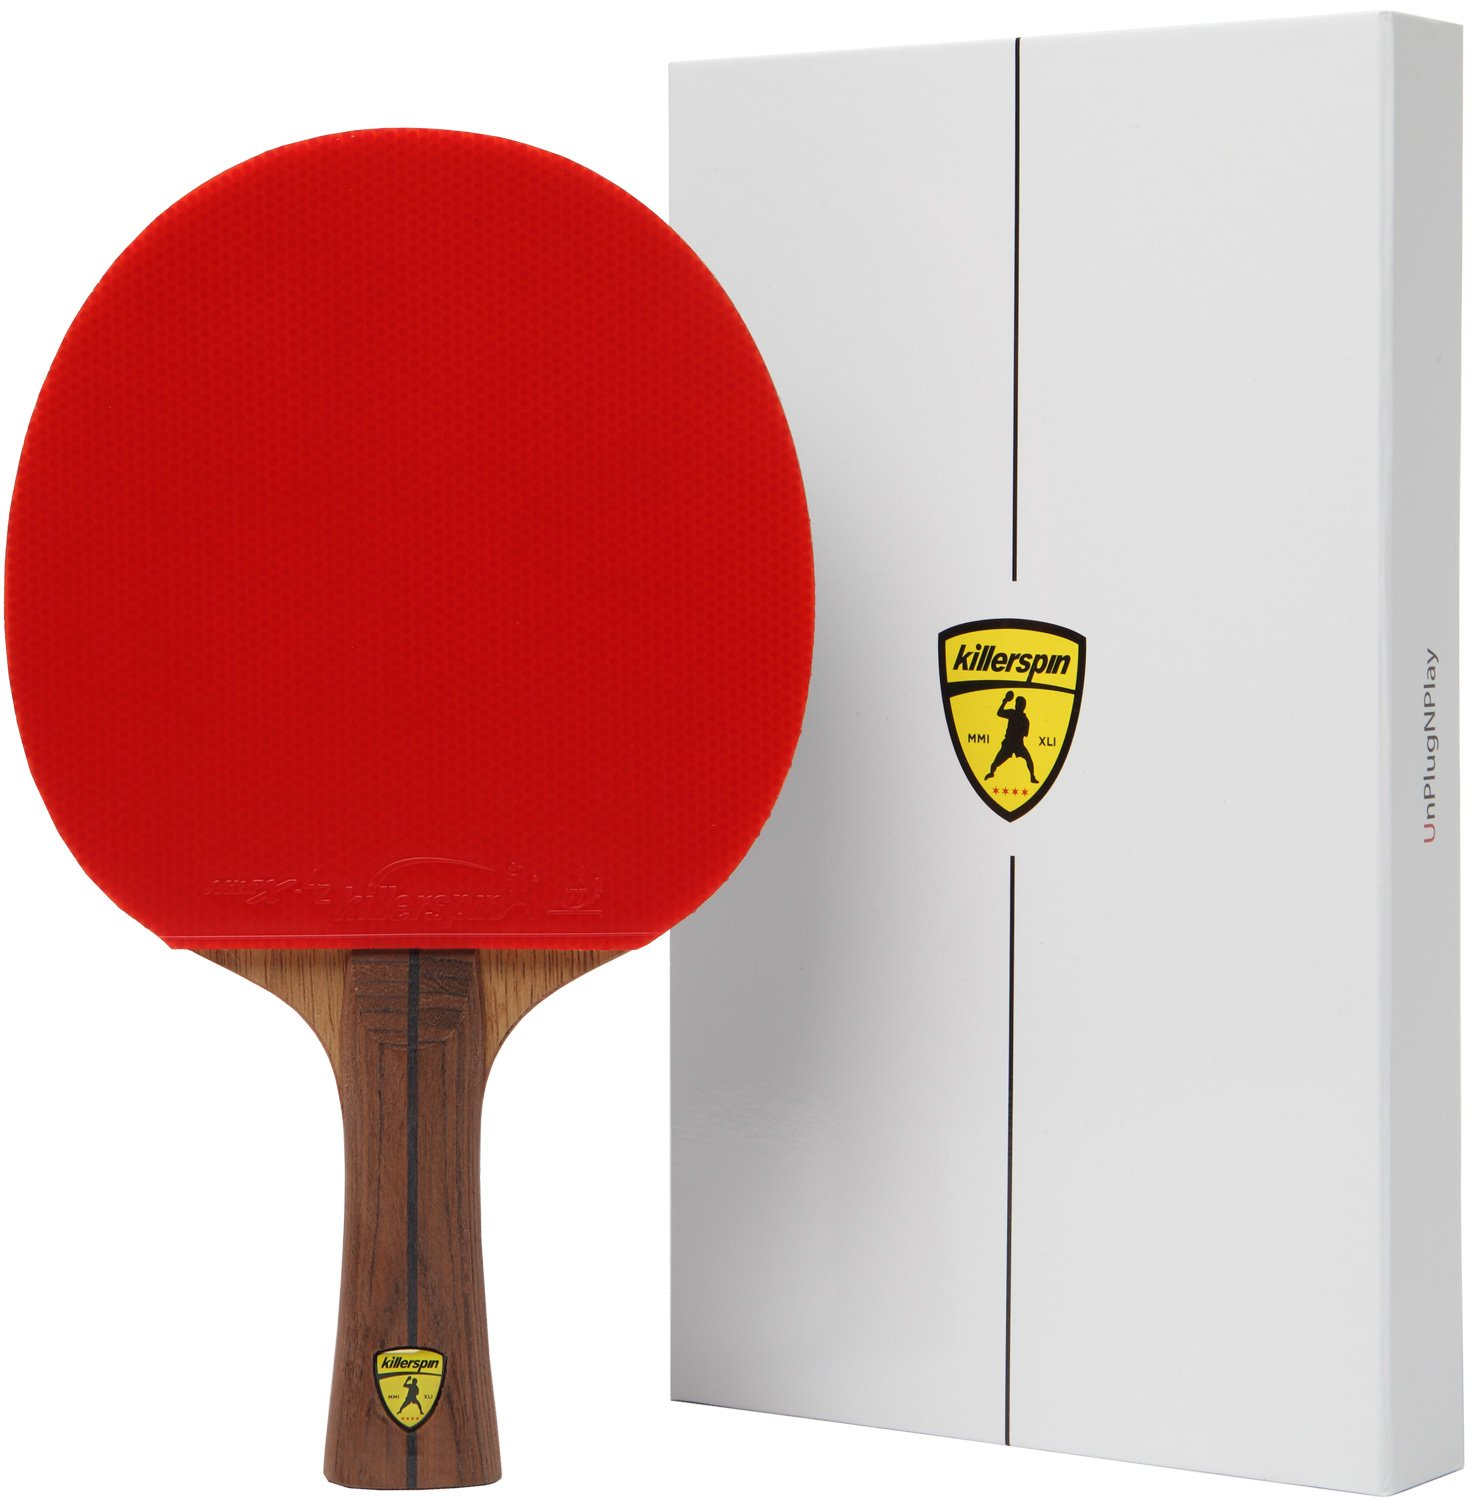 Killerspin jet800速度n1 Table Tennis Paddle – UltimateプロフェッショナルPing PongパドルwithカーボンLayers Pared with特別設計メモリーブック B0085TX43S